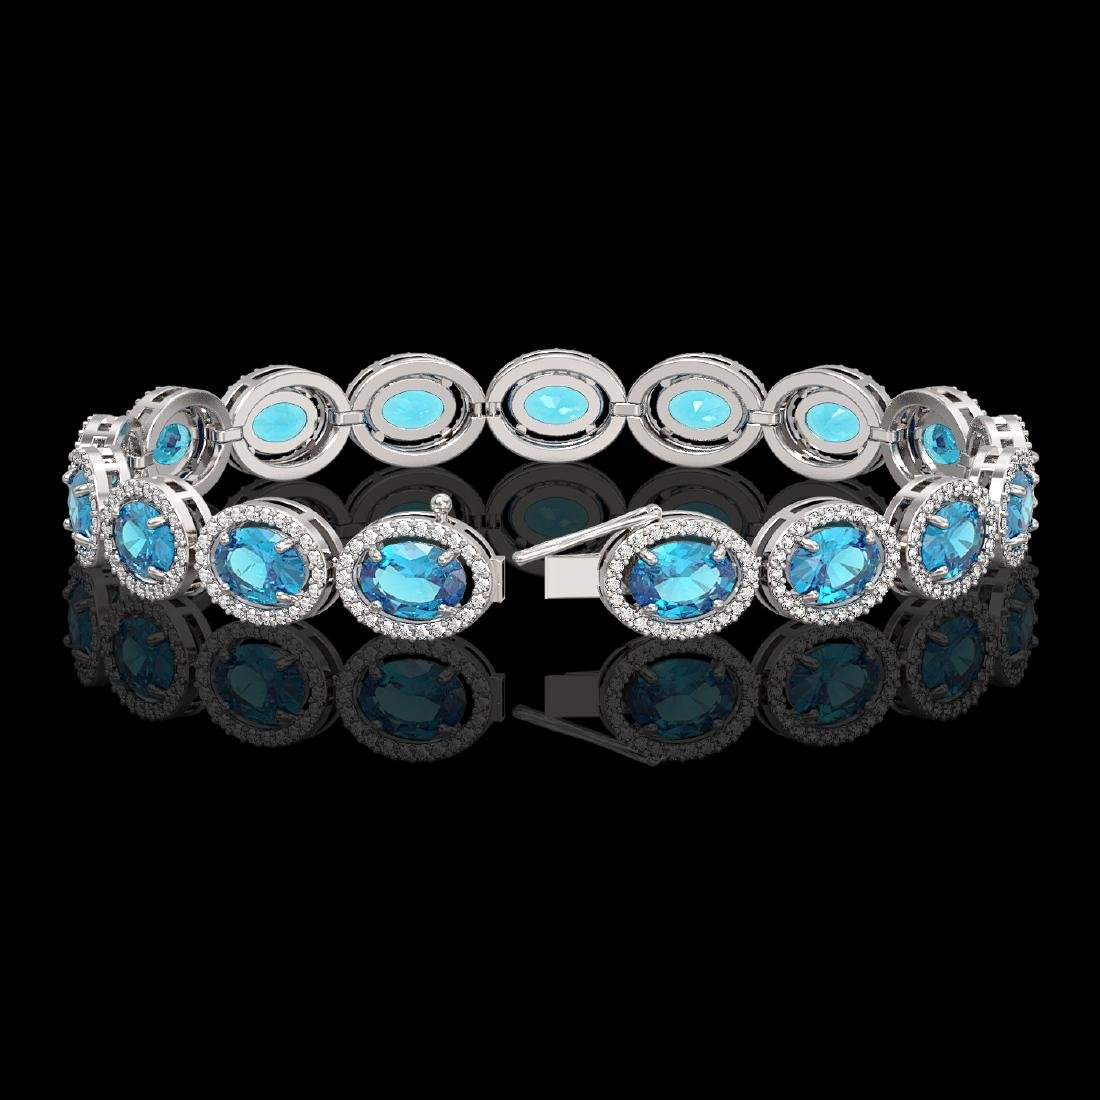 24.32 CTW Swiss Topaz & Diamond Halo Bracelet 10K White - 2